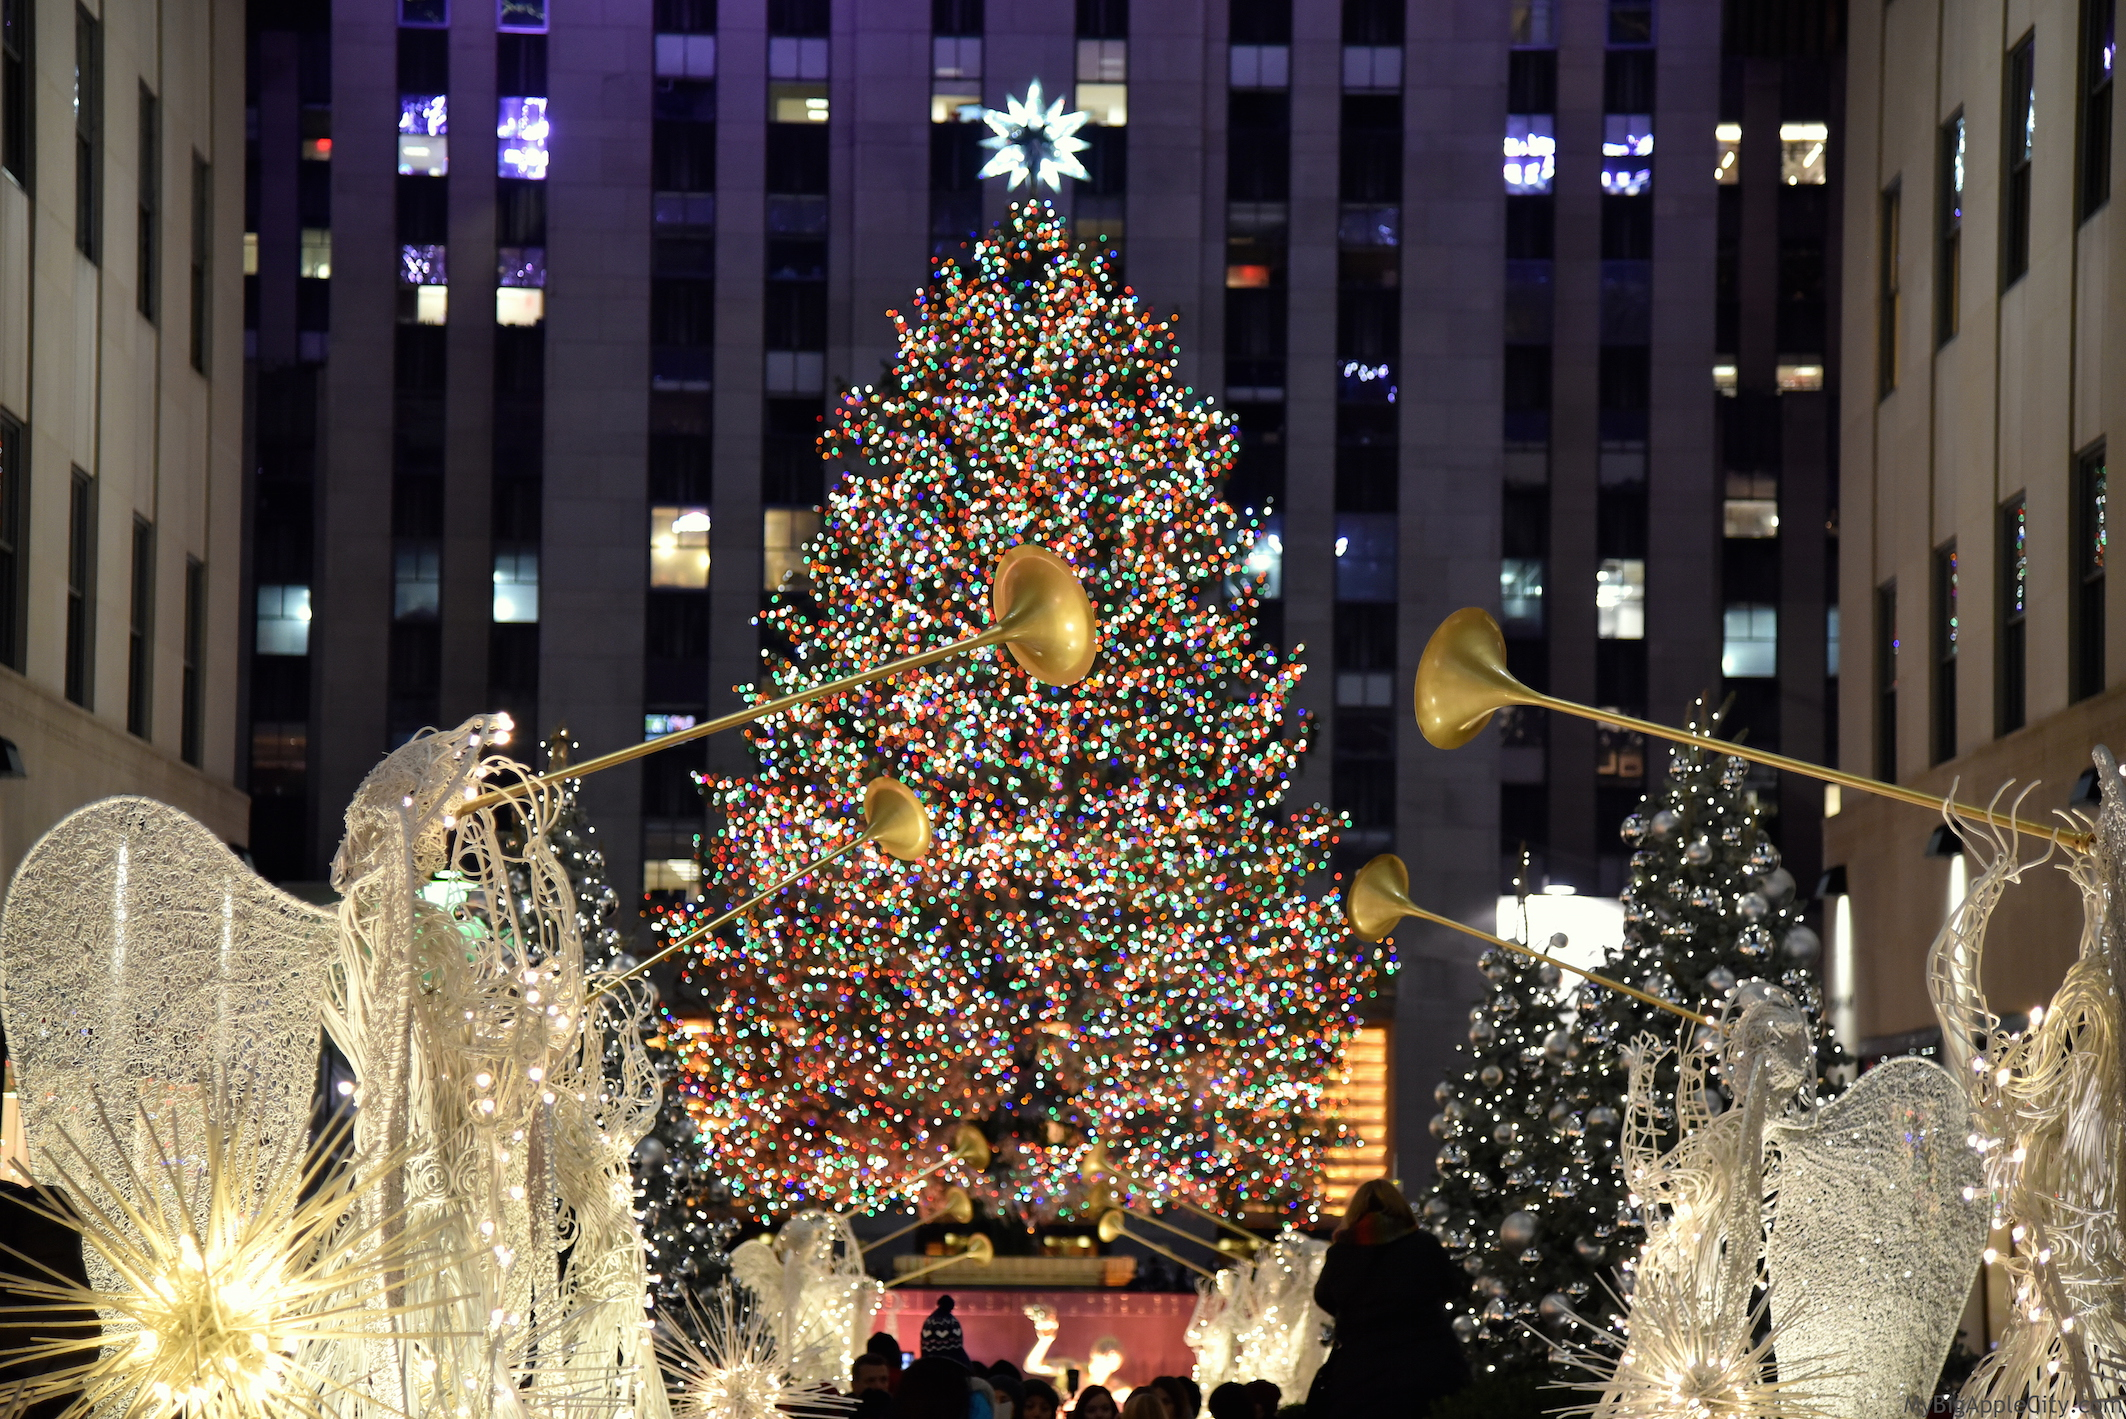 Christmas-Tree-Rockefeller-Center-2015-Holiday-Travel-nyc-MyBigAppleCity